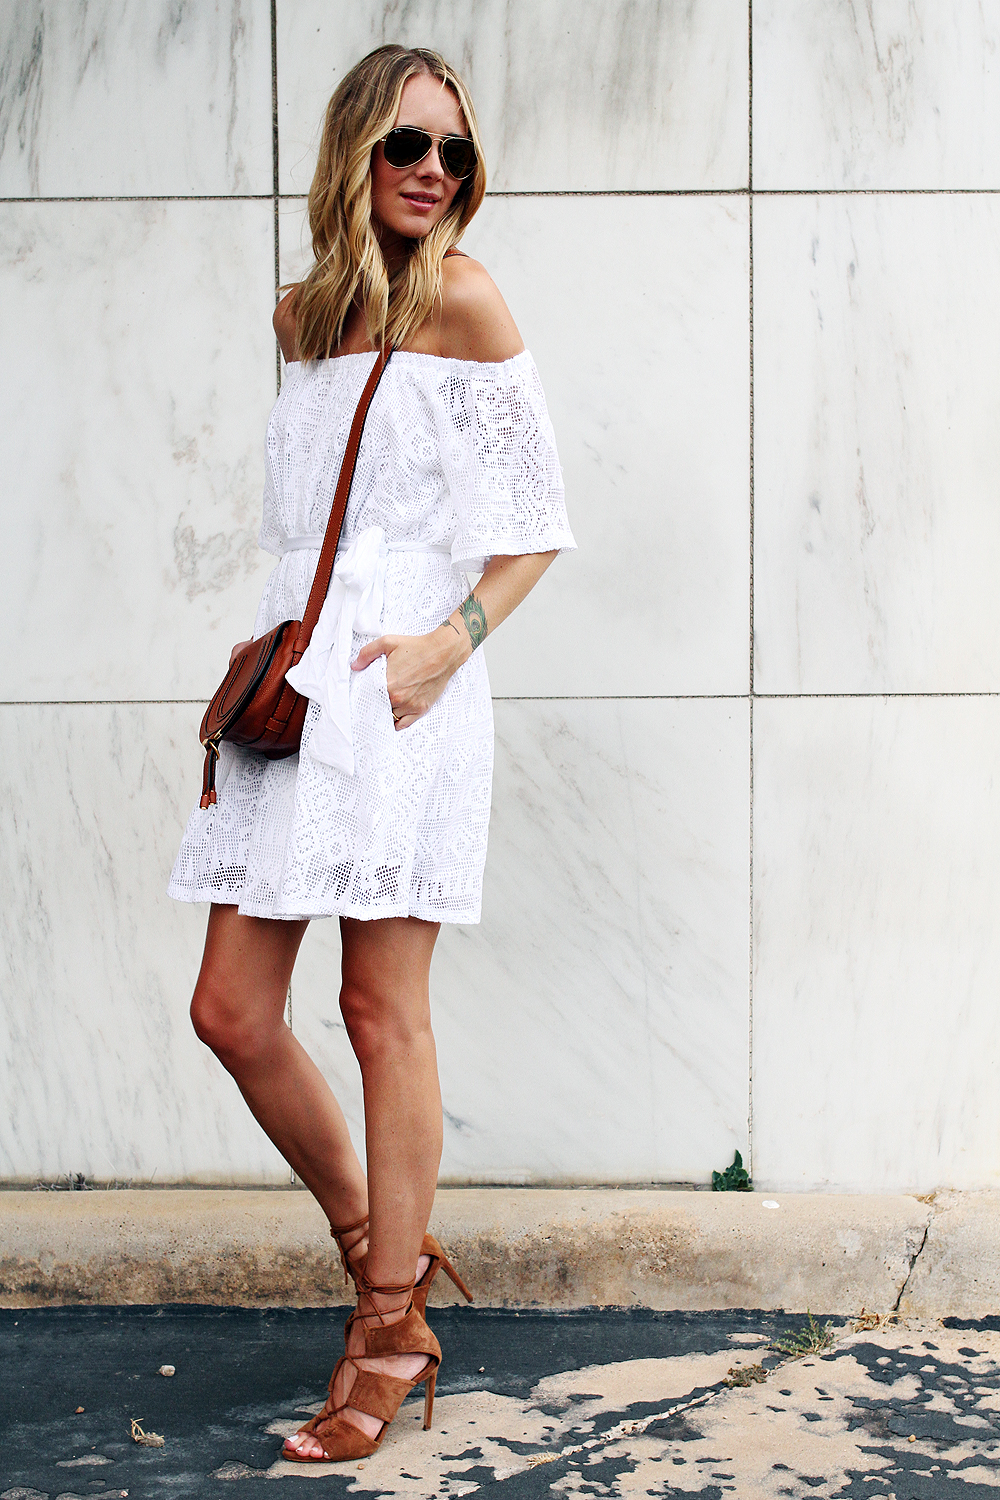 fashion-jackson-banana-republic-white-lace-off-the-shoulder-dress-chloe-tan-marcie-crossbody-zara-tan-lace-up-heels